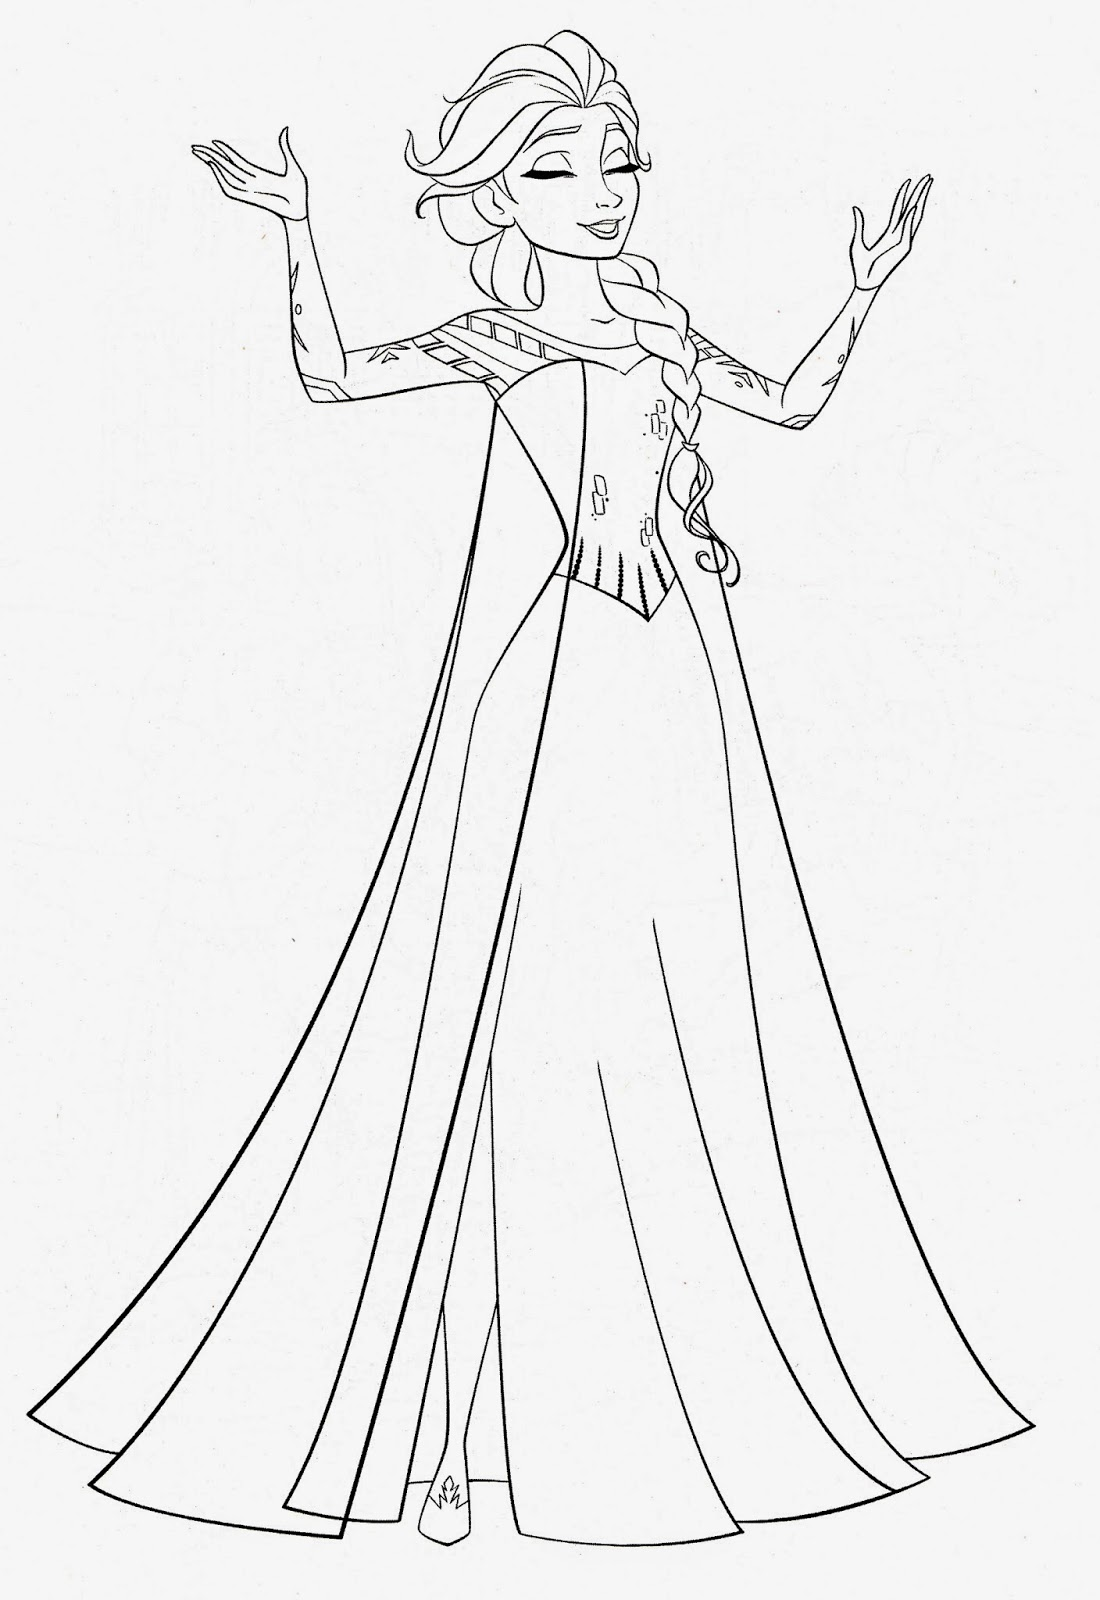 frozen princess coloring pages elsa frozen coloring page google zoeken kleurplaten pages frozen princess coloring